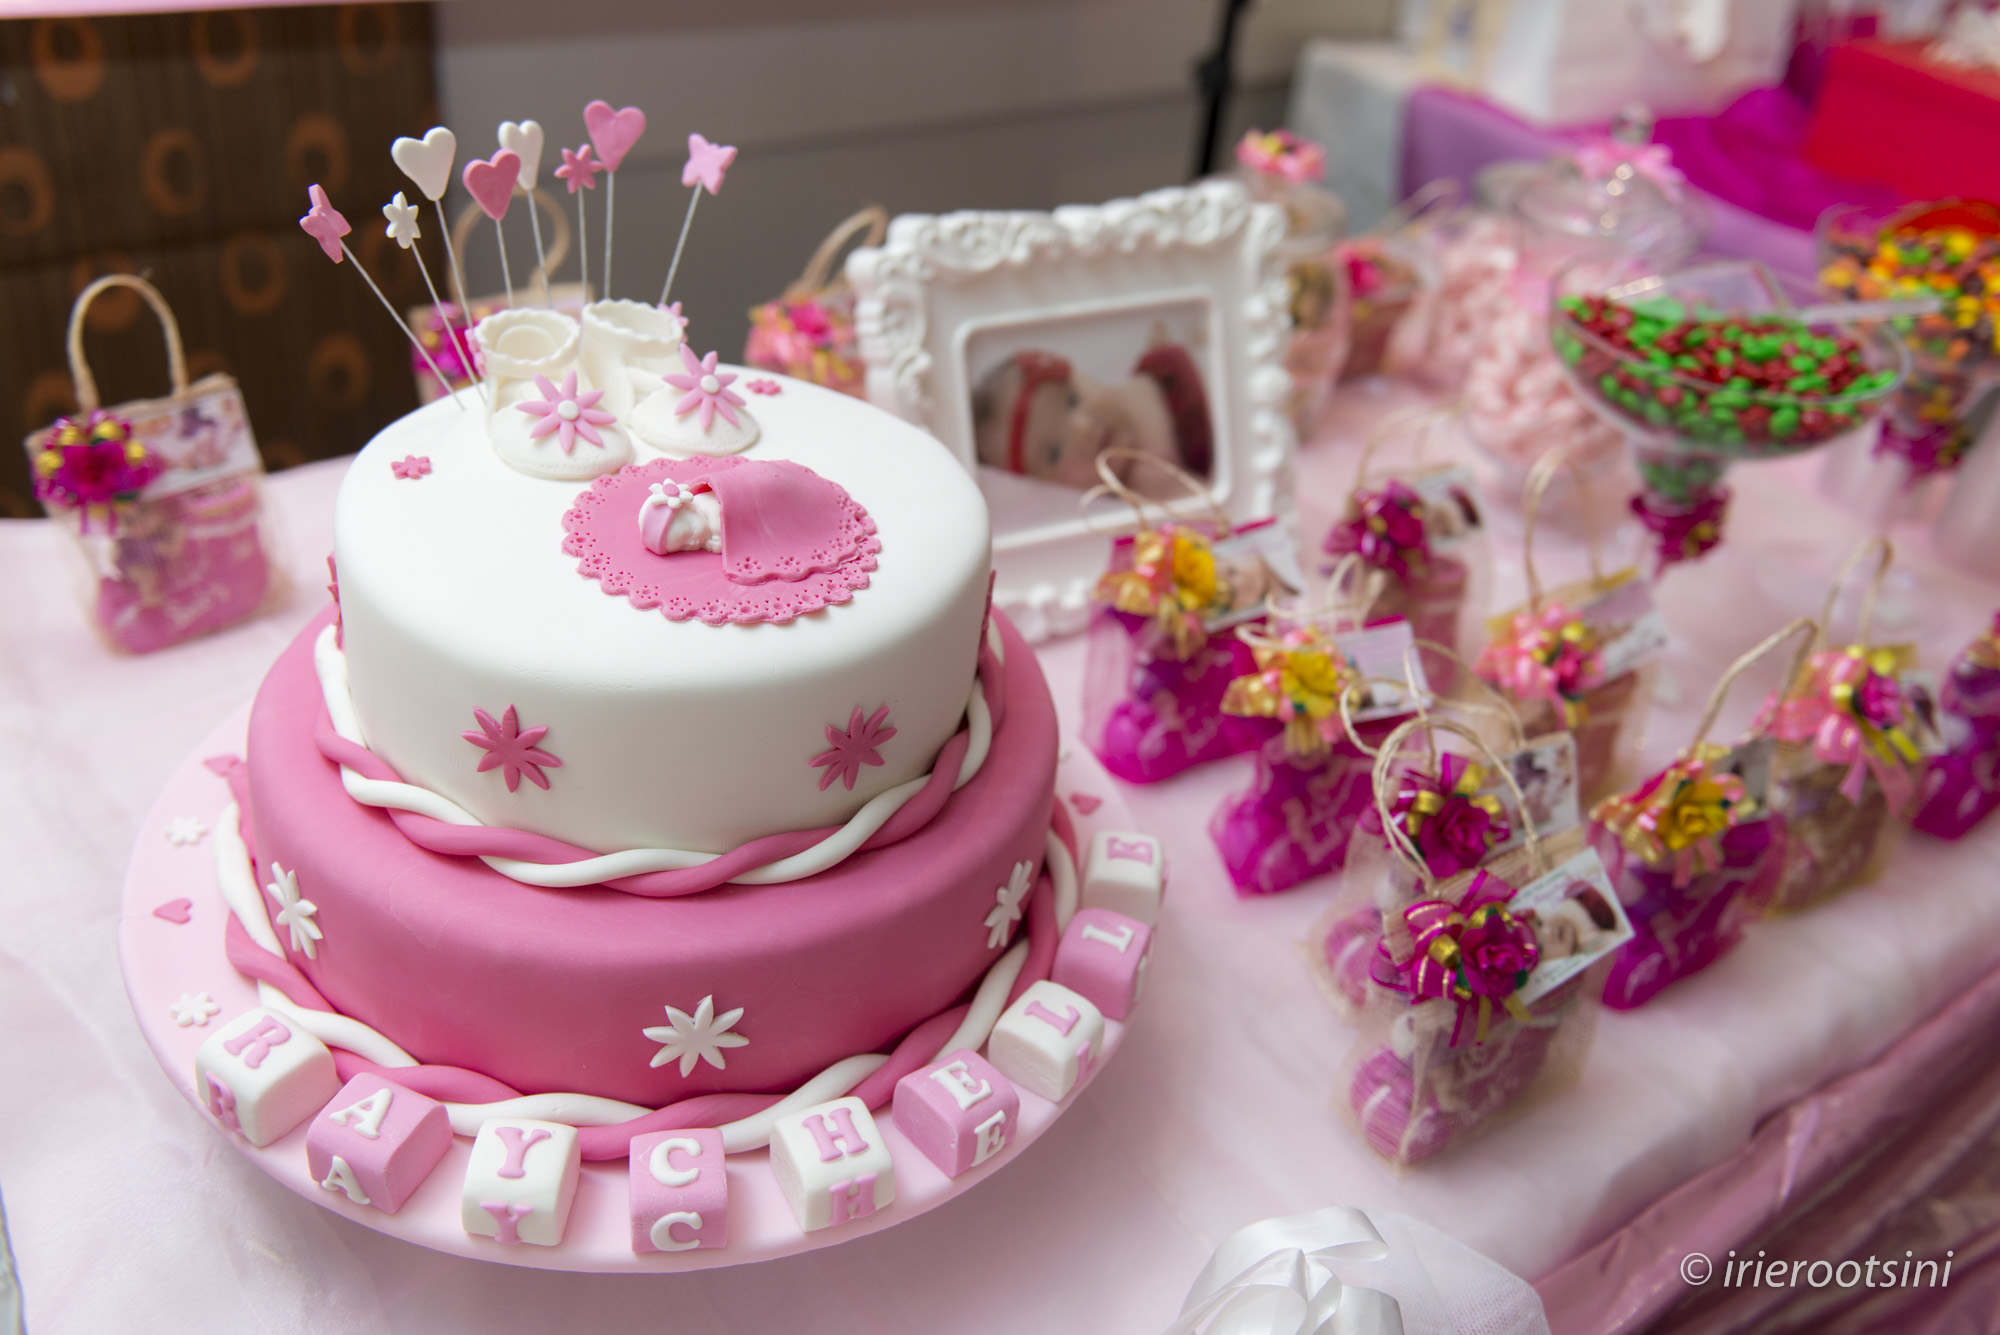 Christening Cake and Giveaways